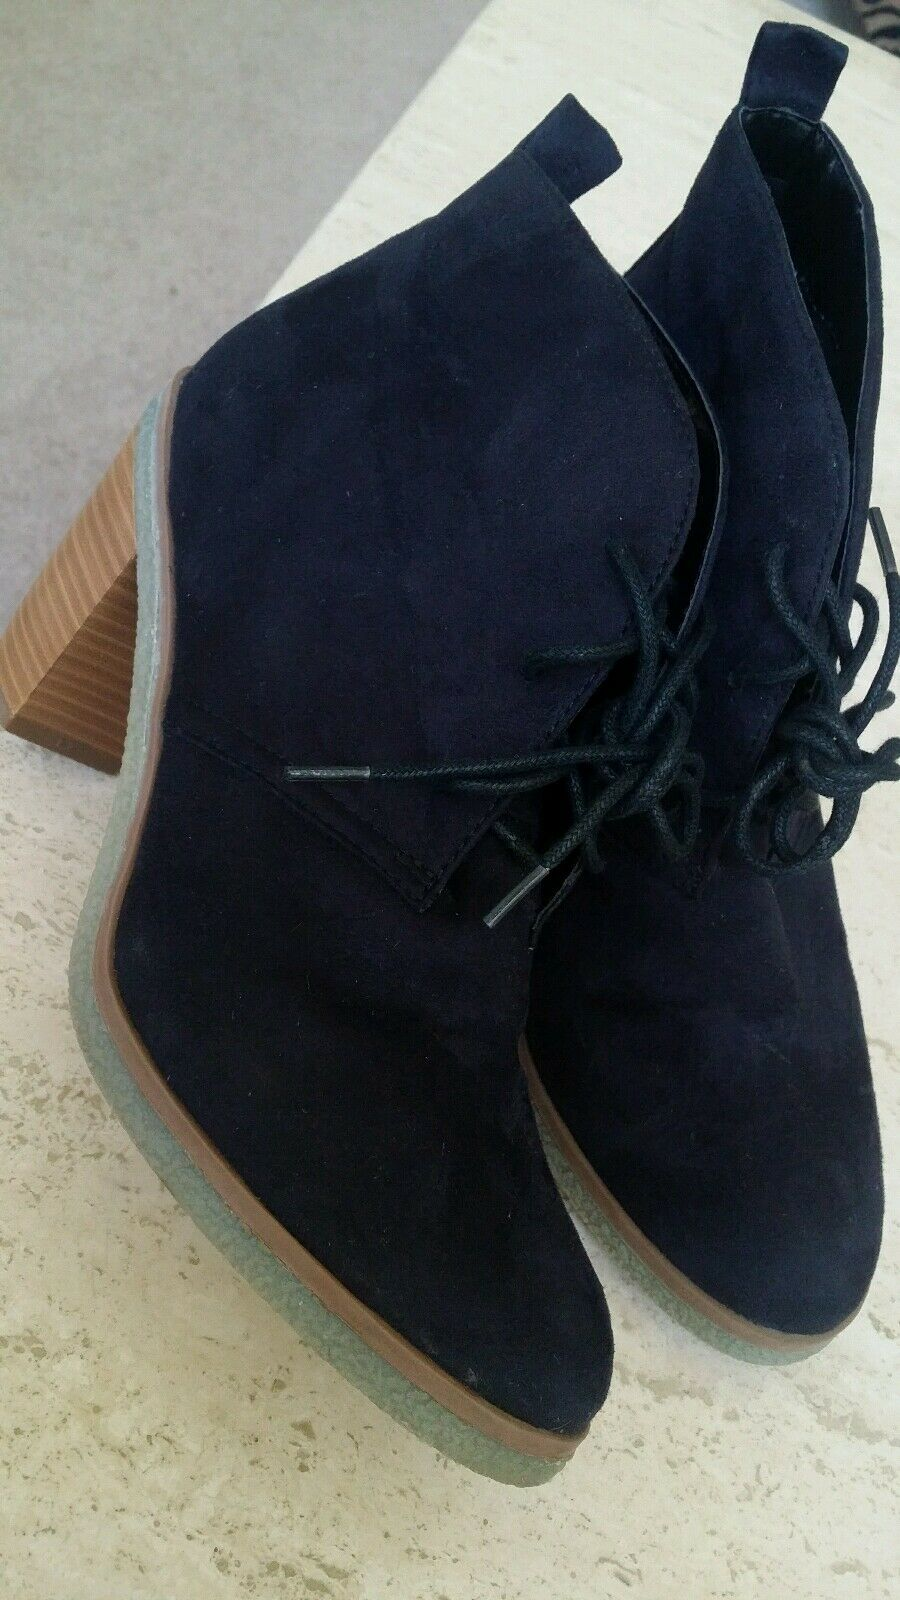 American Outfitters Ankle Boot Sz 8 Oogle Lace-Up Heel Faux Black Suede Trendy